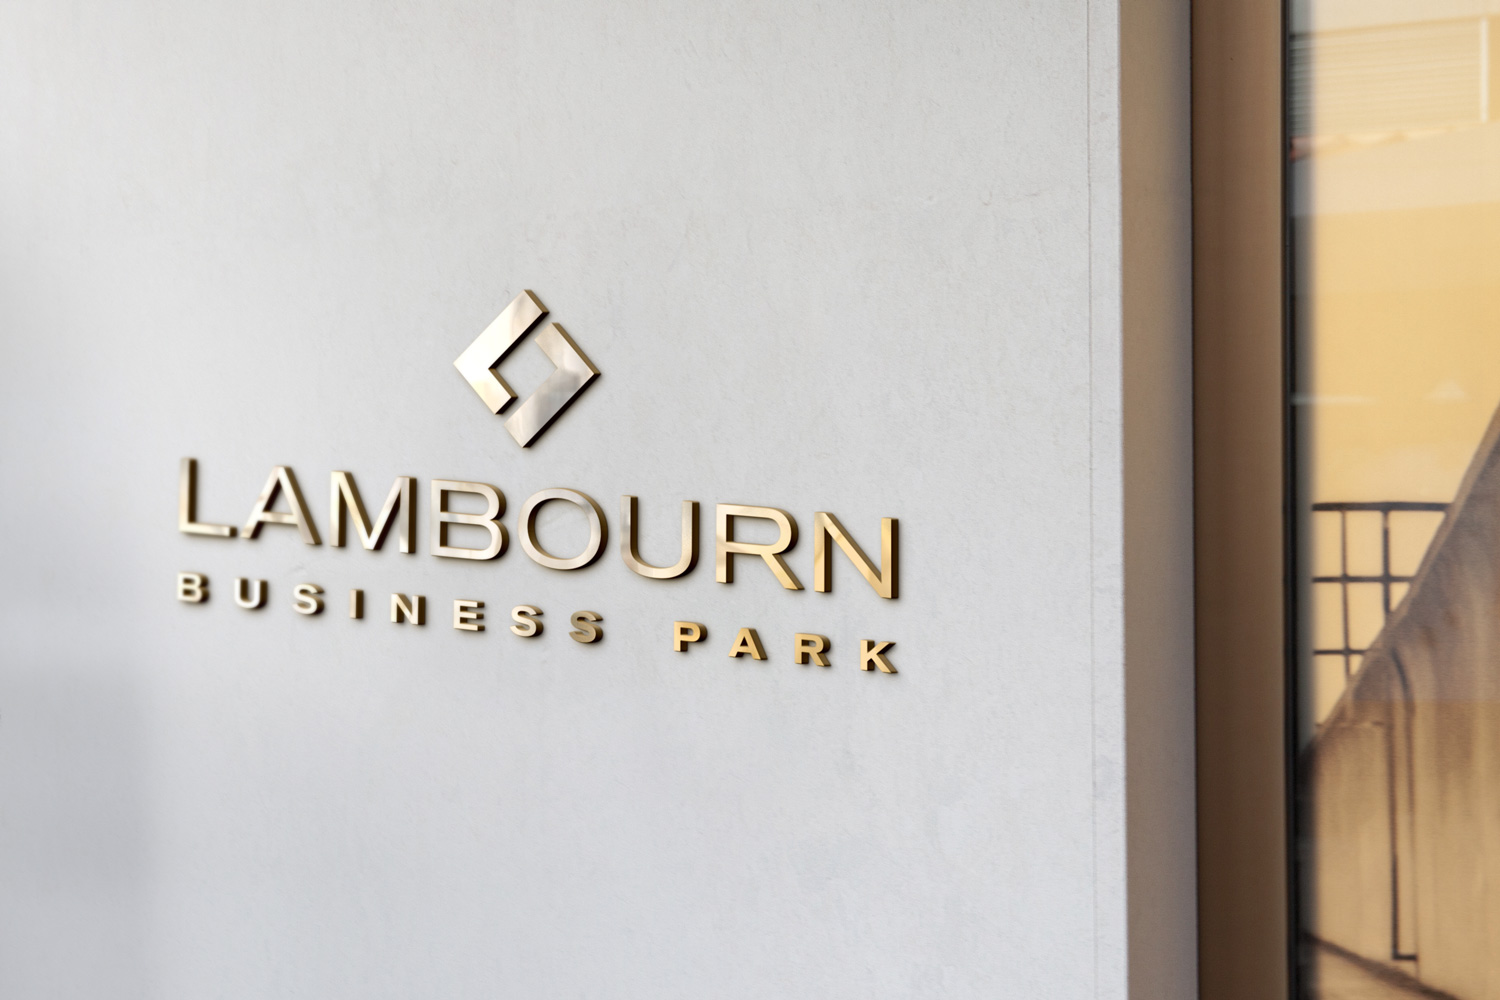 lambourn-business-park-signage-get-it-sorted.jpg